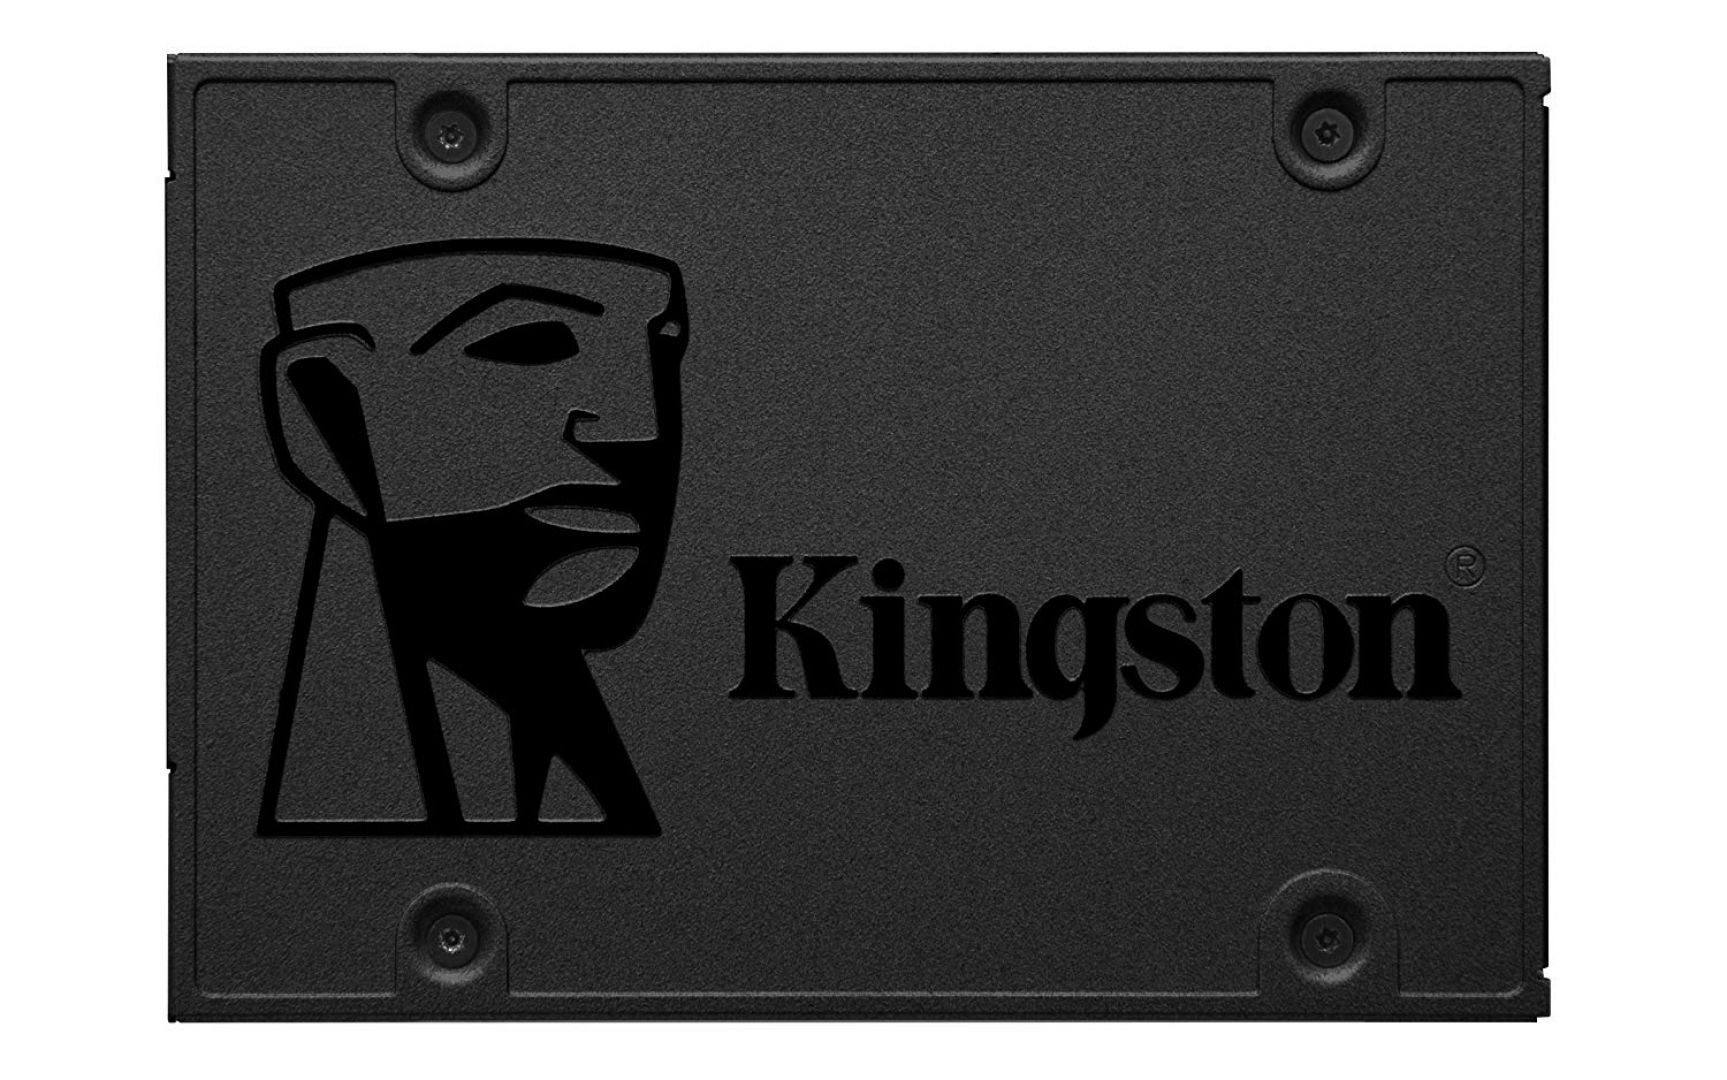 Kingston SA400S37/480G product image.